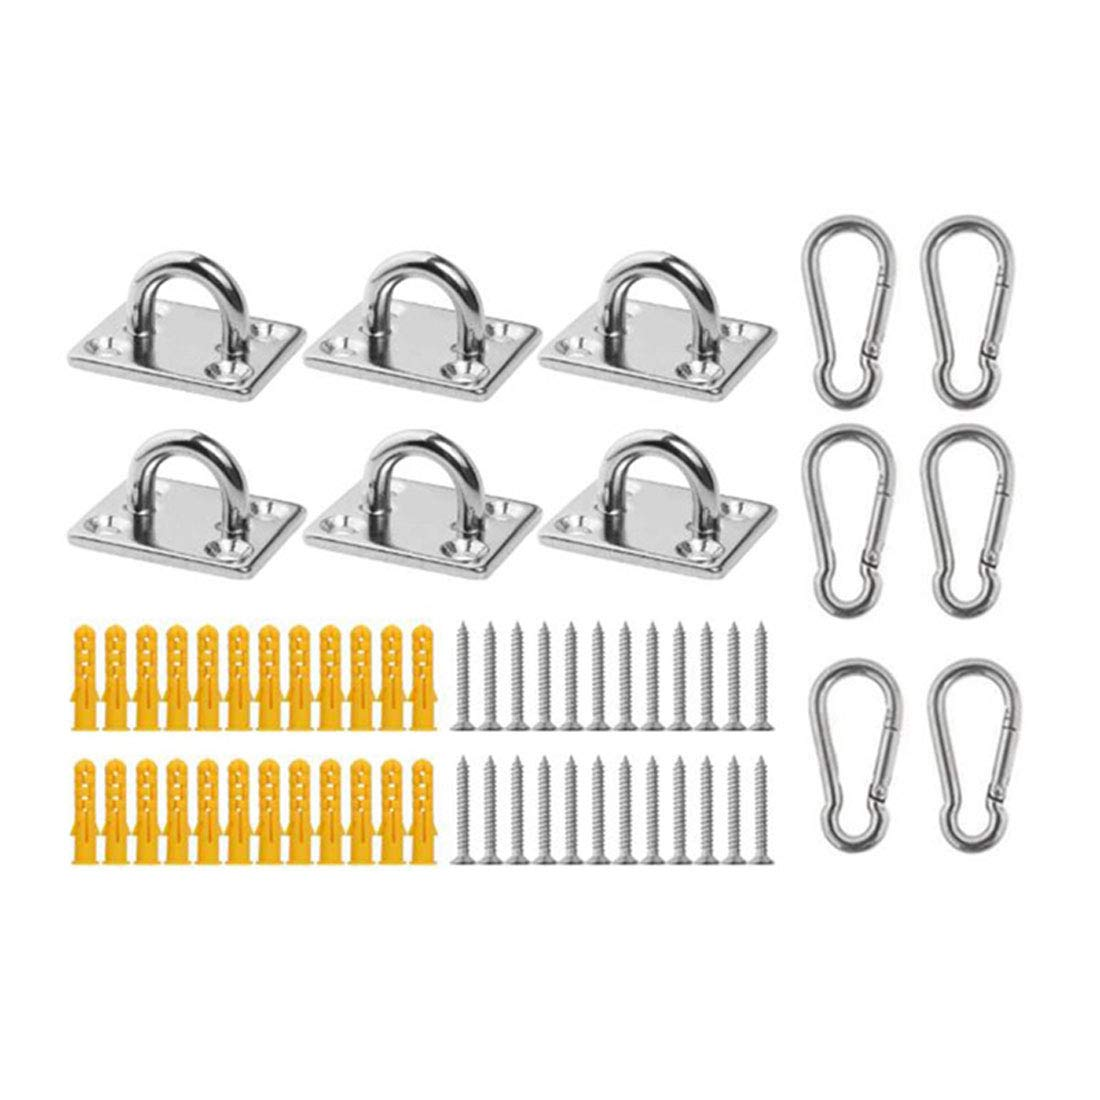 HiiBaby Stainless Steel Hook Loop U-Shaped - Heavy Duty Wall Ceiling Hammock Hooks Hanger for Swing Suspension(6 U Ceiling Button+6 Spring Clasp+24 Screw+24 Anchor)